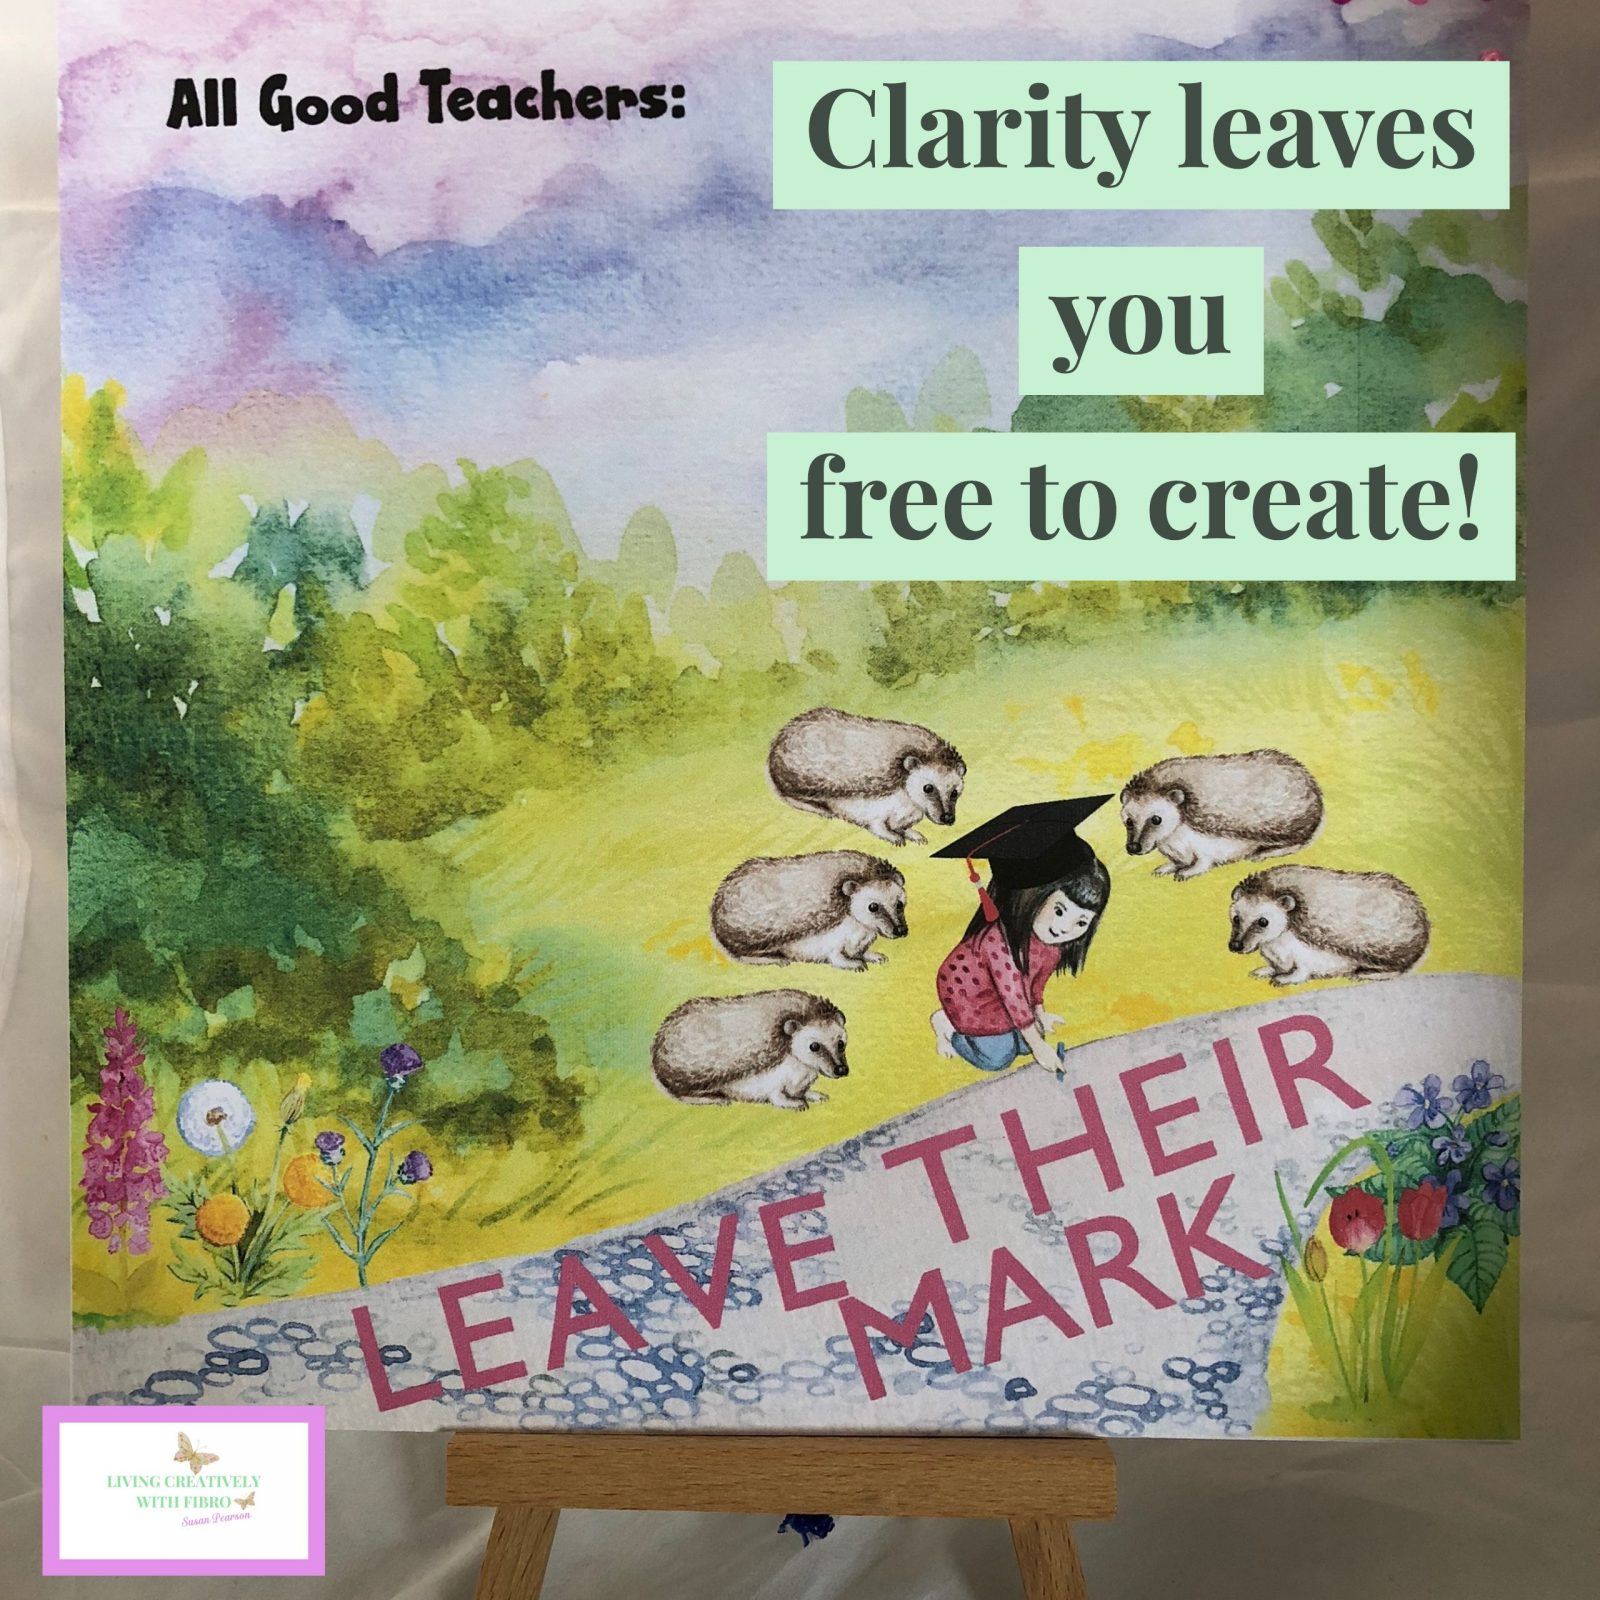 Living Creatively with Fibro | An image of a greetings card I designed with the words Clarity leaves you free to create